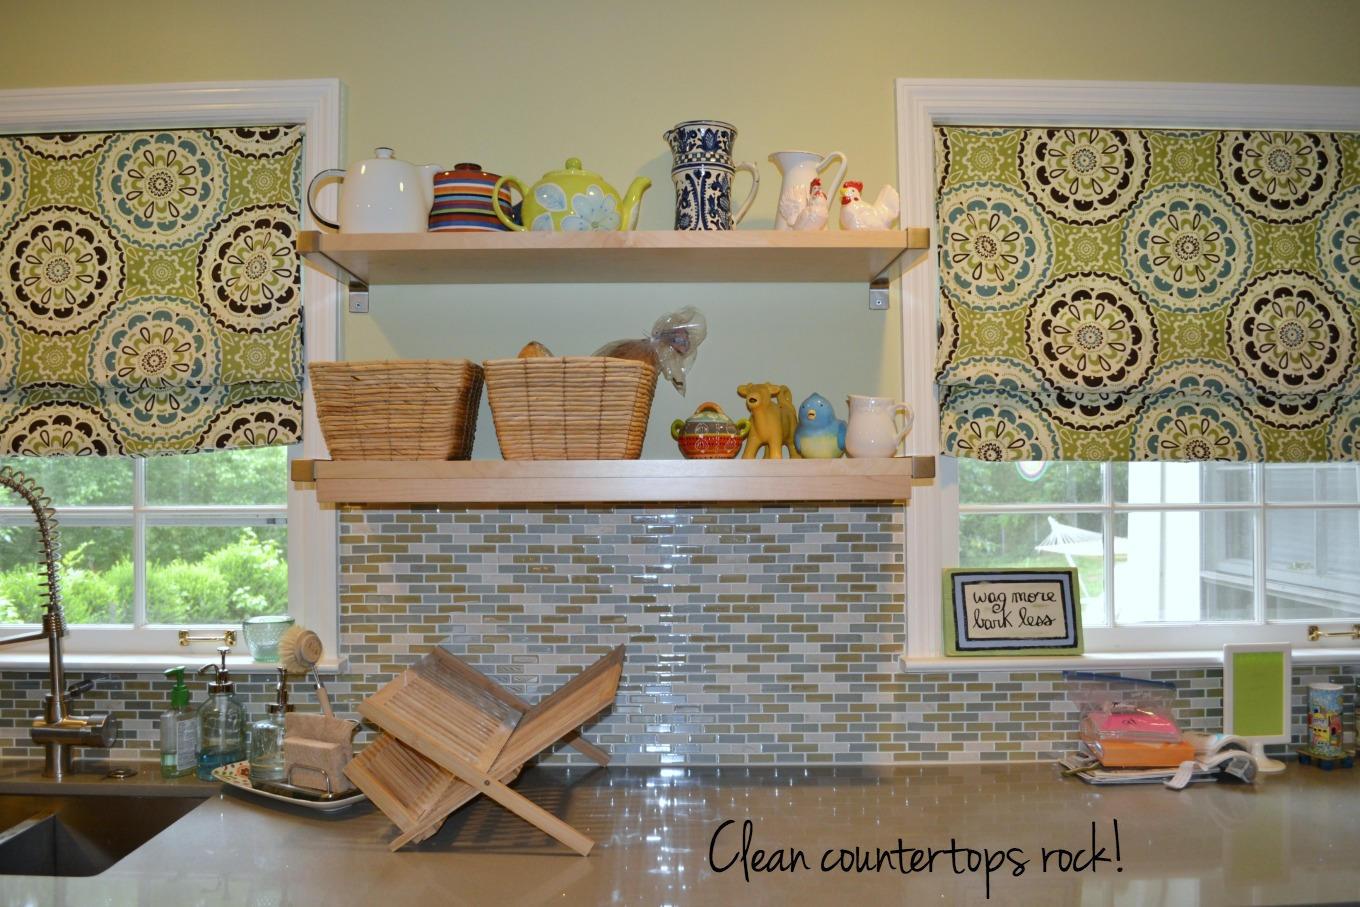 Clean countertops rock - how to be clutter-free in 2017 - thediybungalow.com